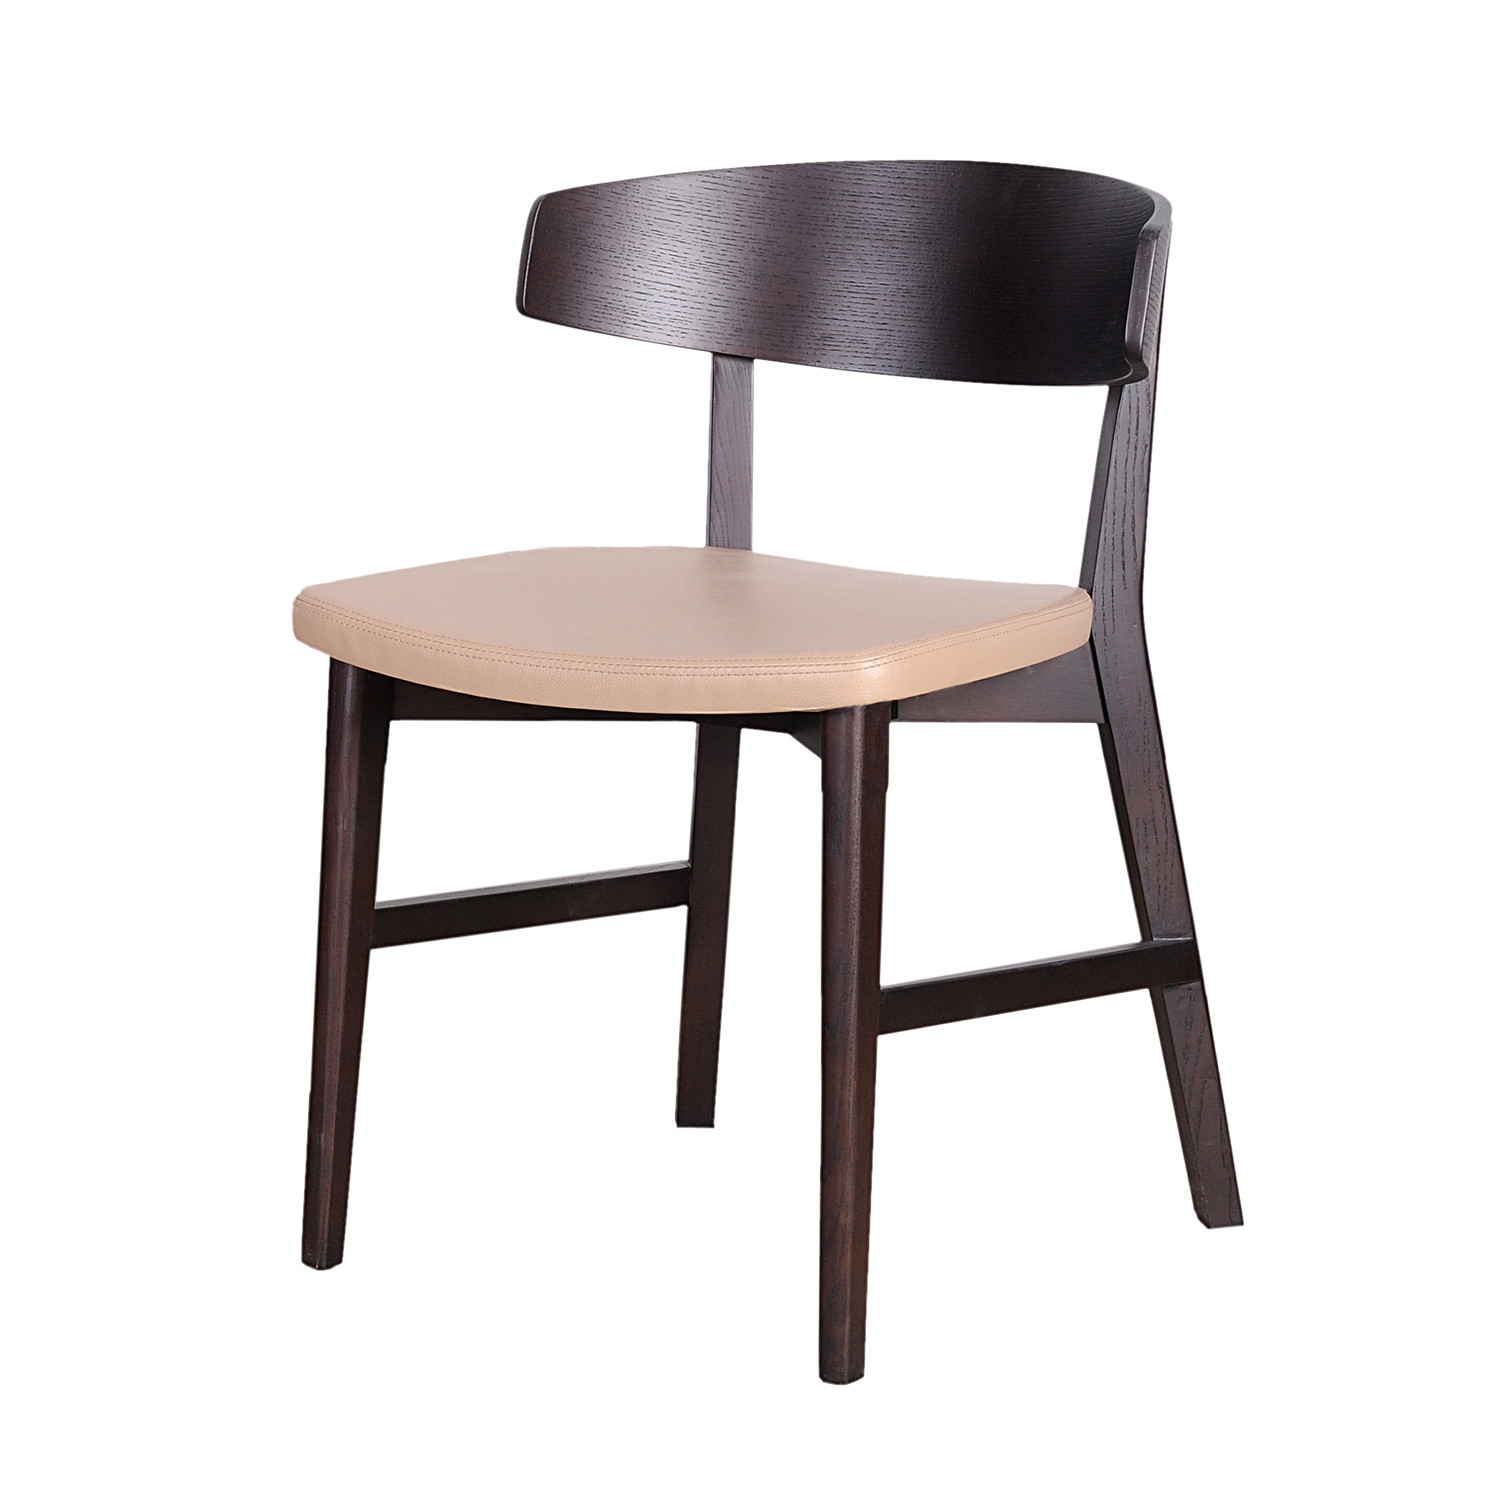 Astounding Como Dining Chair Moes Furniture Touch Of Modern Andrewgaddart Wooden Chair Designs For Living Room Andrewgaddartcom